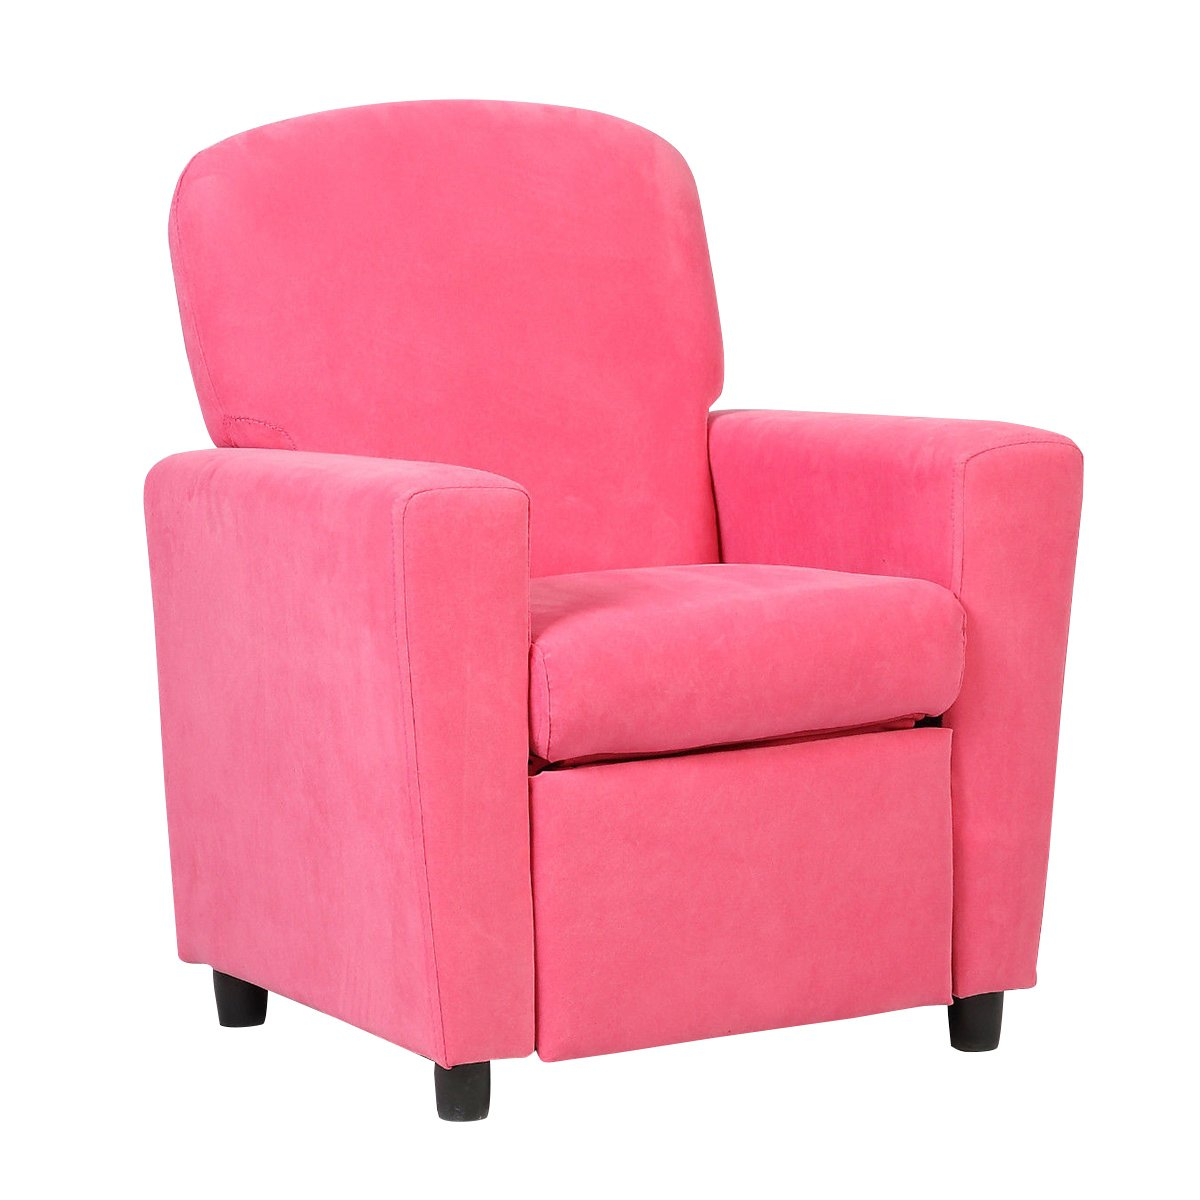 Costzon Kids Recliner Sofa Chair Children Reclining Seat Couch Room Furniture (Pink)